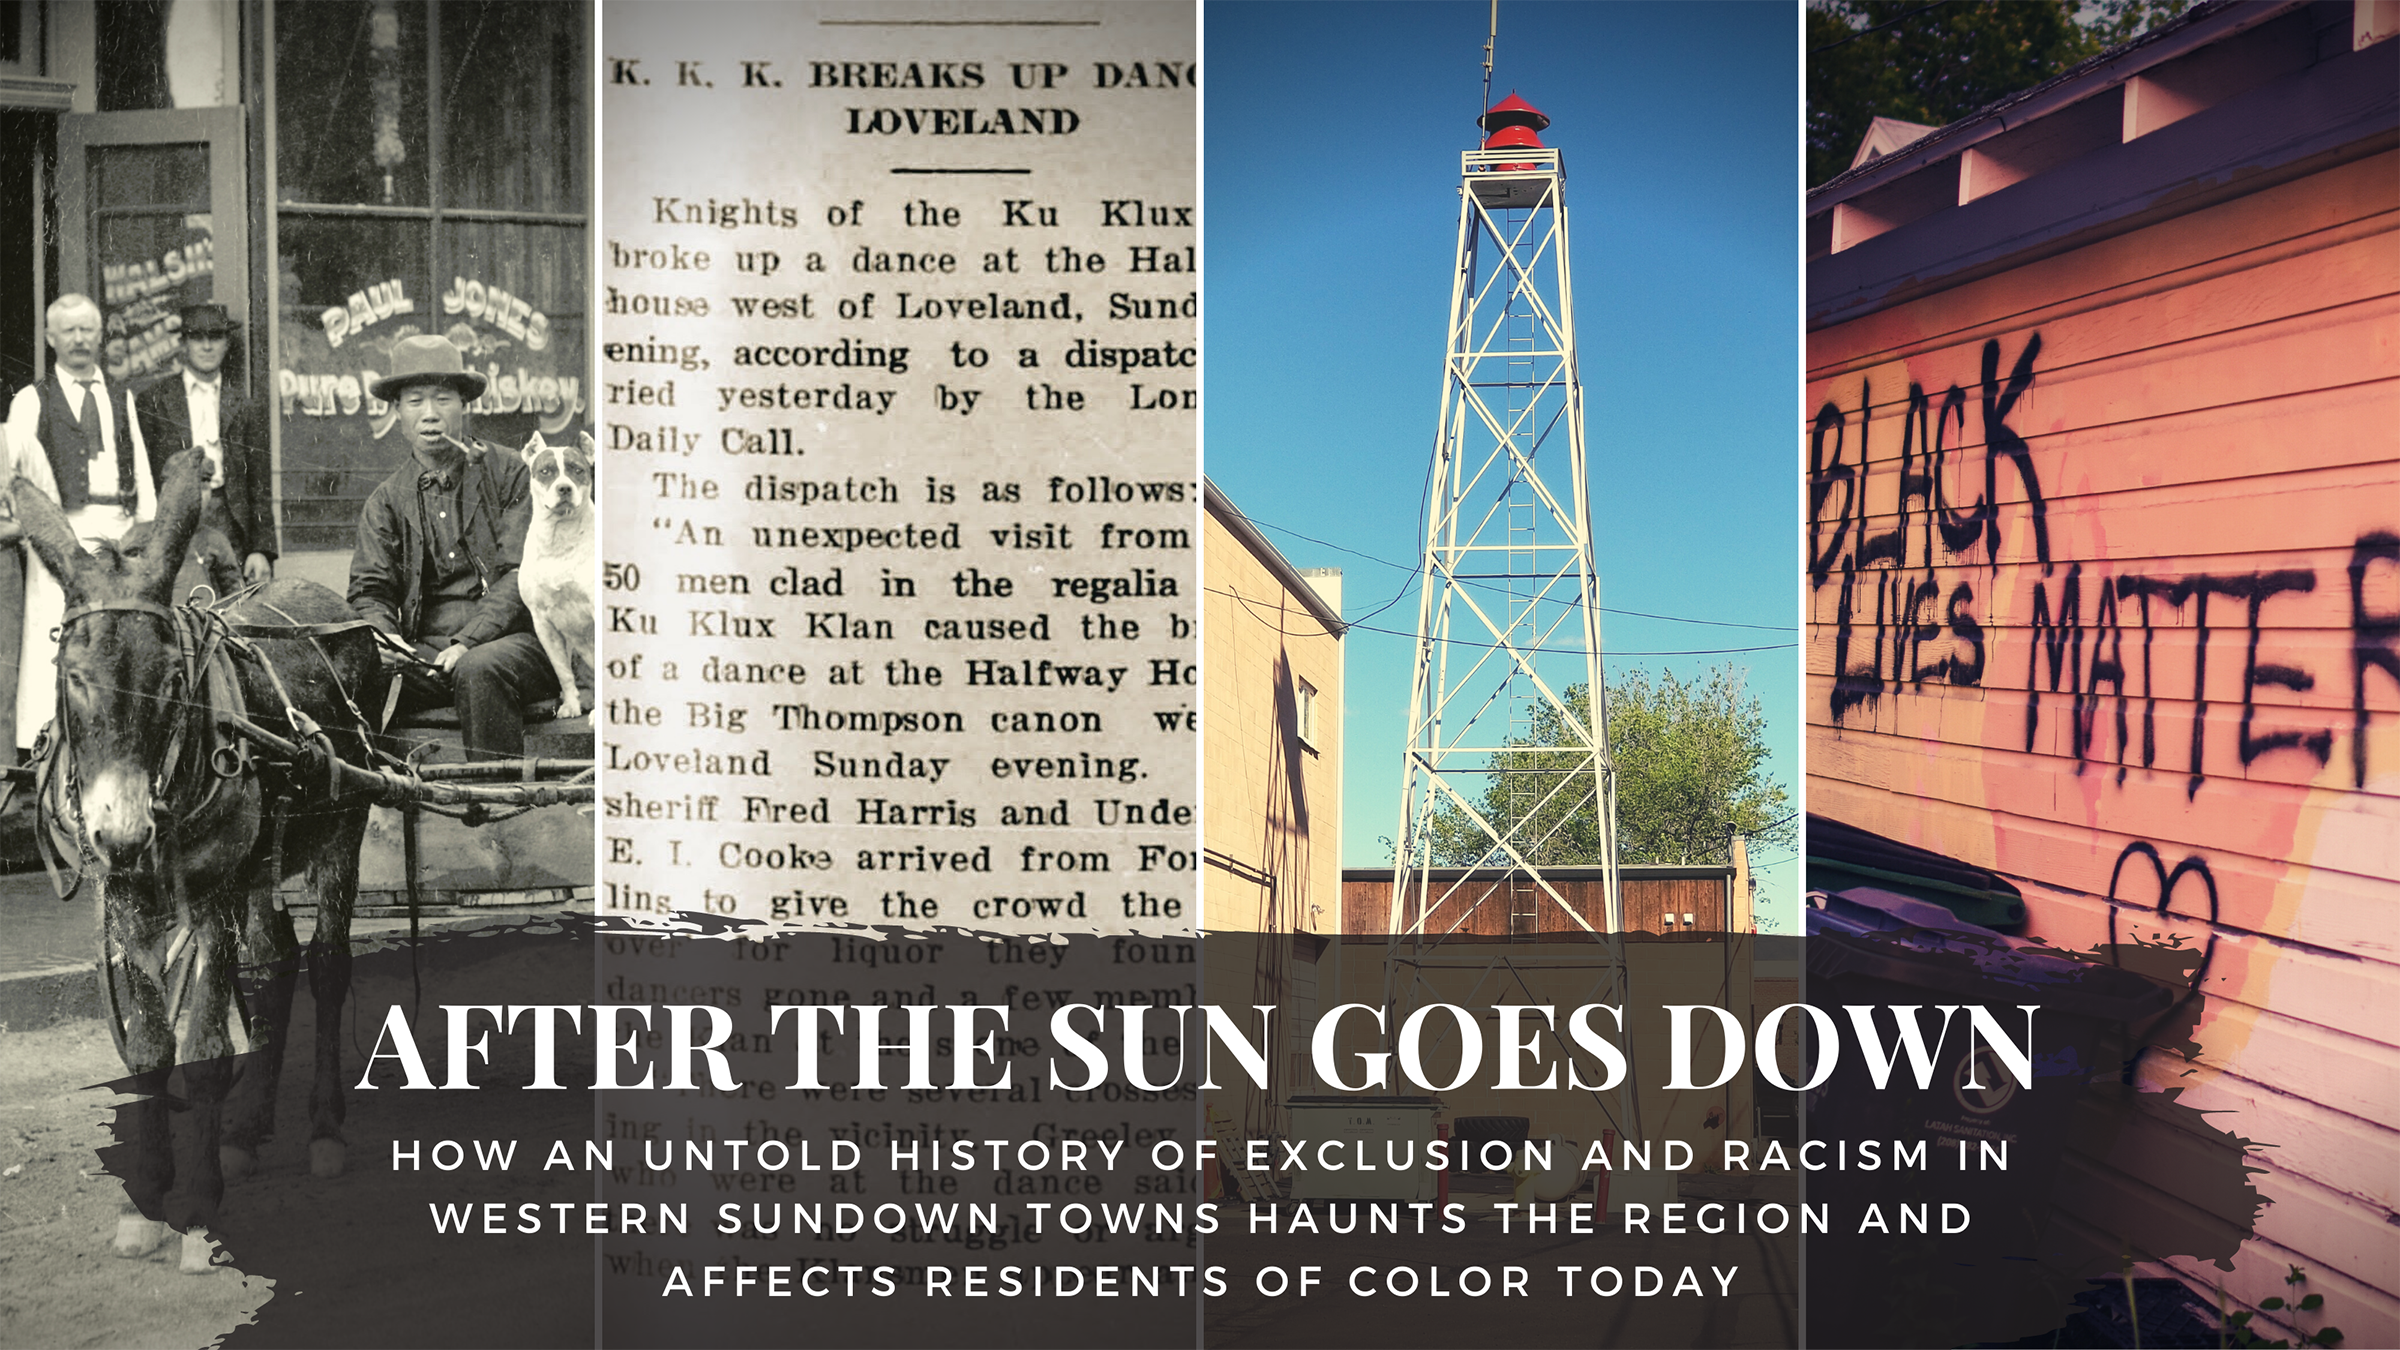 After The Sun Goes Down: How an untold history of exclusion and racism in Western sundown towns haunts the region and affects residents of color today